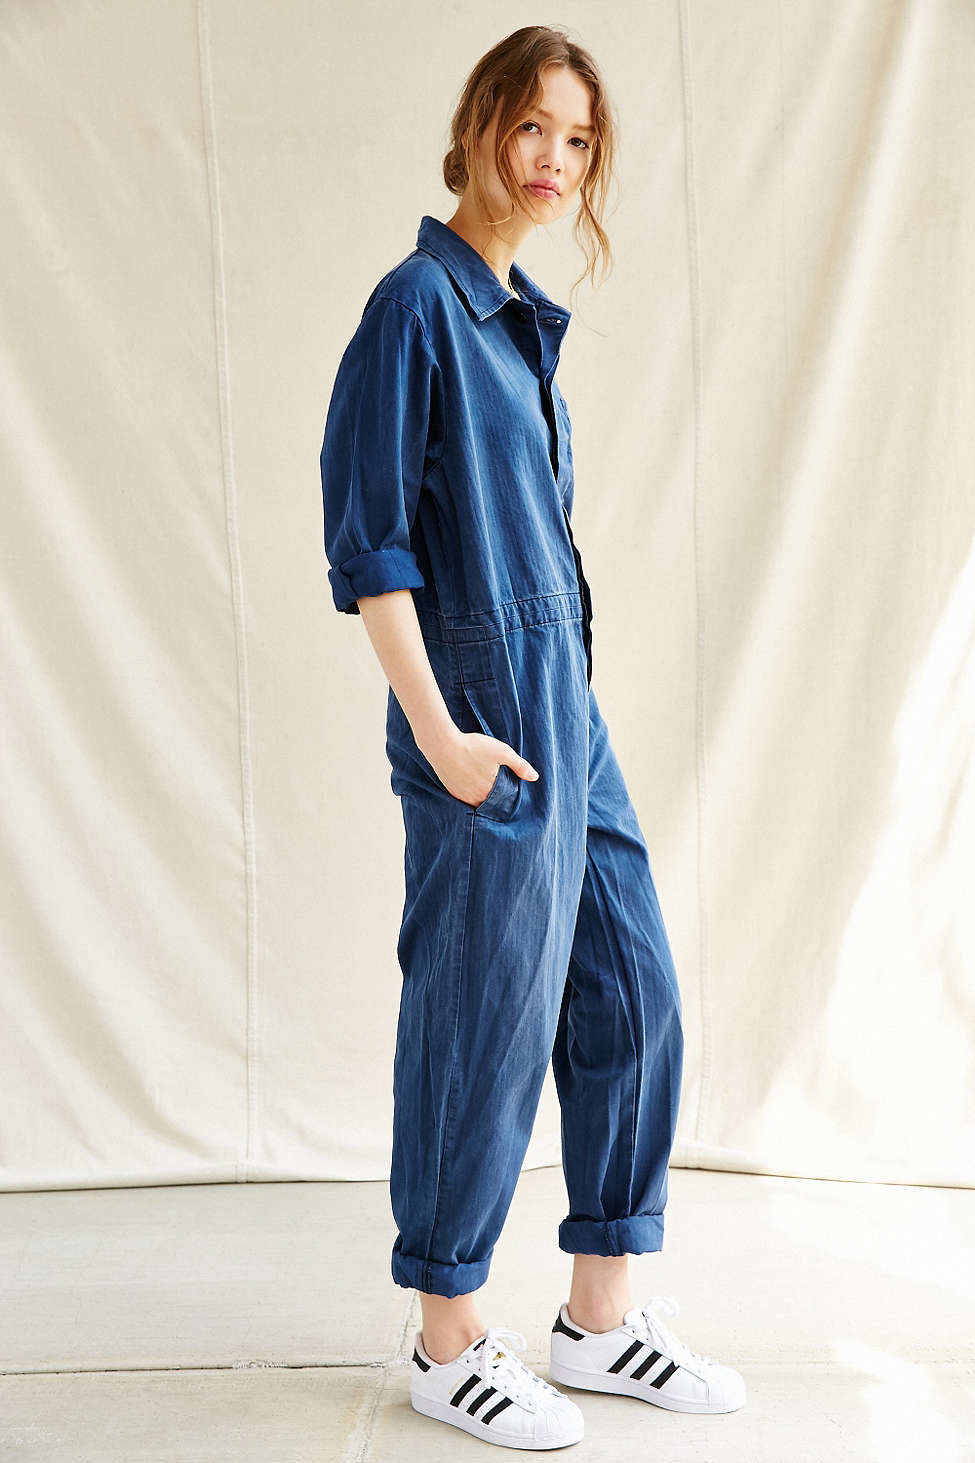 6d7cc0db836 Gallery. Previously sold at  Urban Outfitters · Women s Denim Dungarees  Women s Denim Overalls ...